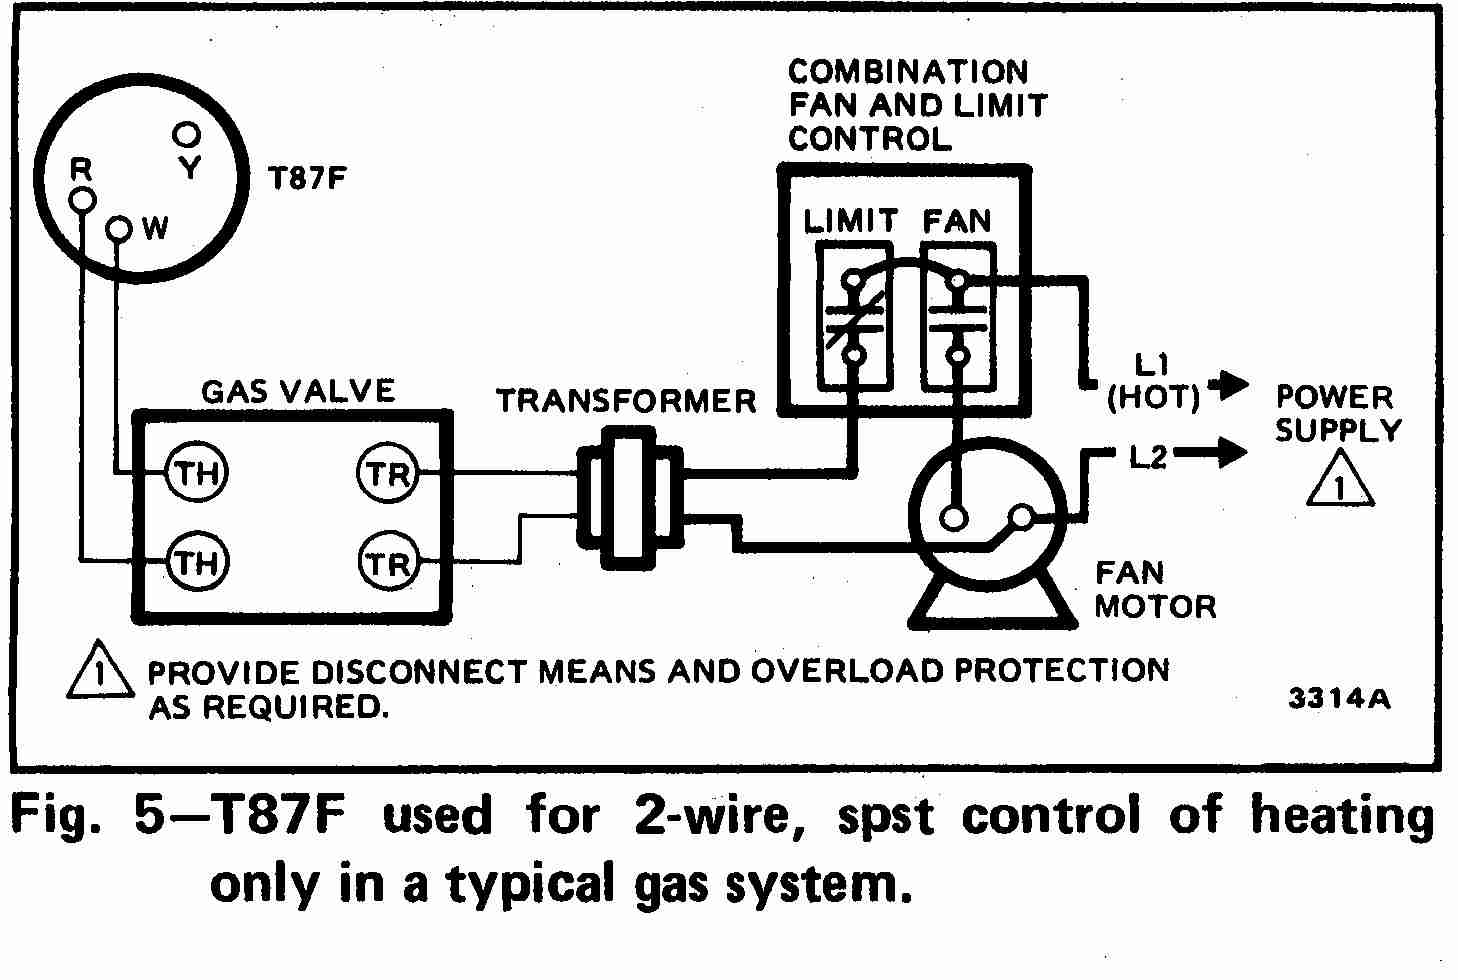 TT_T87F_0002_2Wg_DJF guide to wiring connections for room thermostats oil furnace wiring diagram at gsmx.co